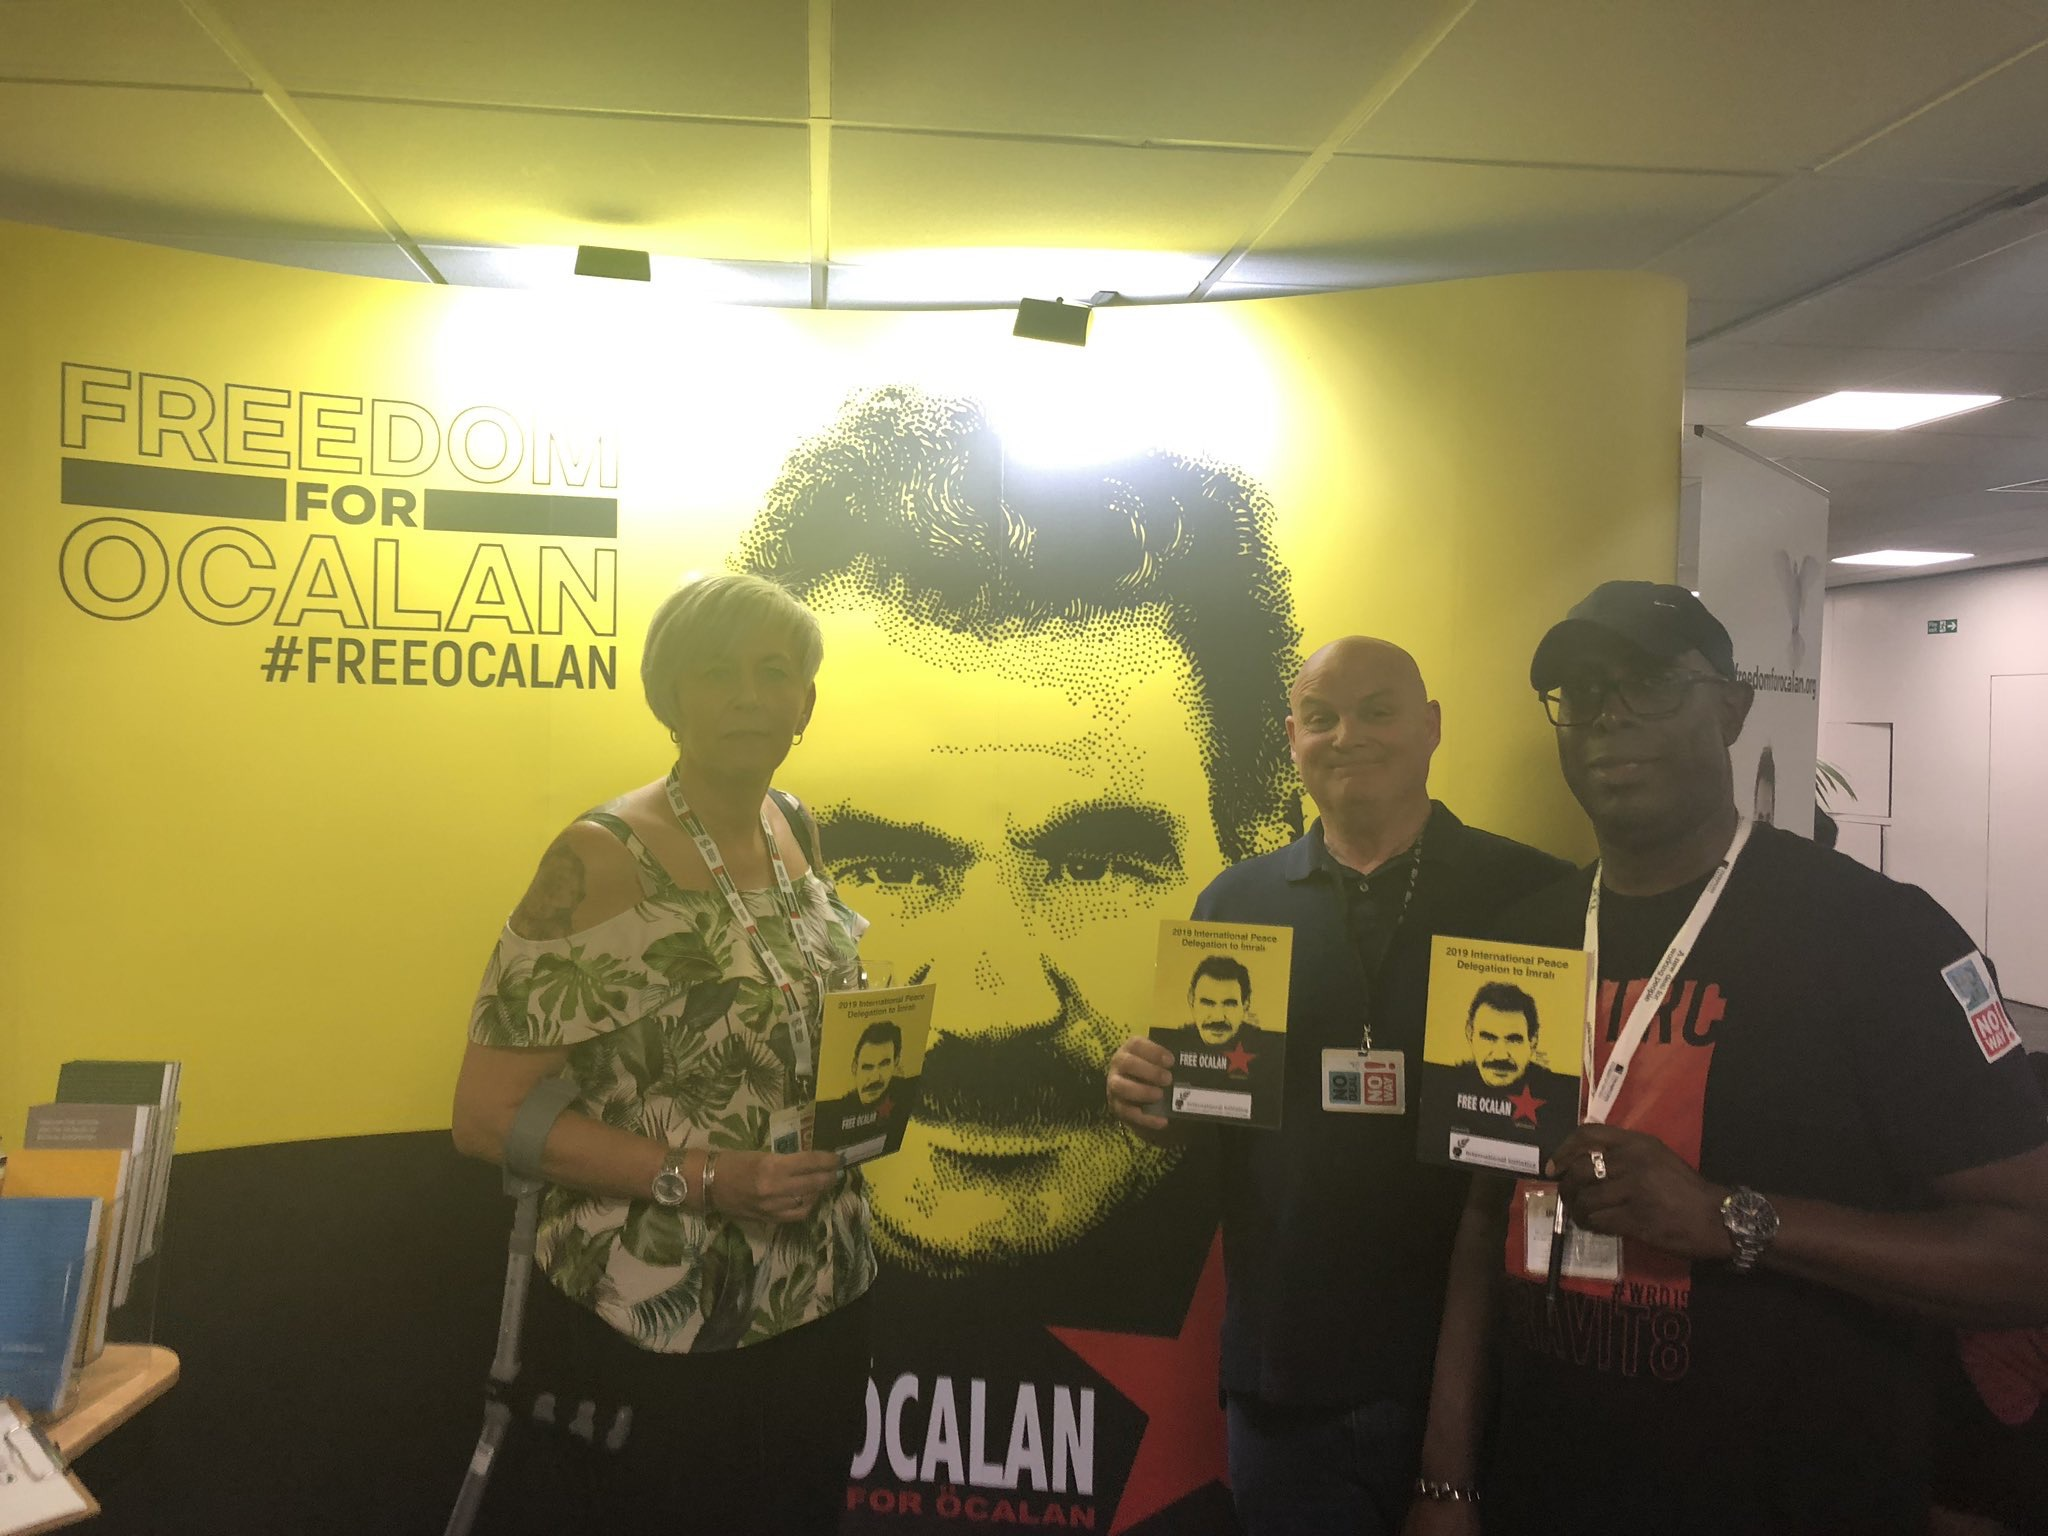 Paula Brenn, Tom Murphy London Print Branch, Unite GPM & IT Sector and Executive Council GPM & IT, Unite the Union, James Mitchell Executive Council member Unite the Union holding placards calling for Freedom for Ocalan at TUC Congress 2019